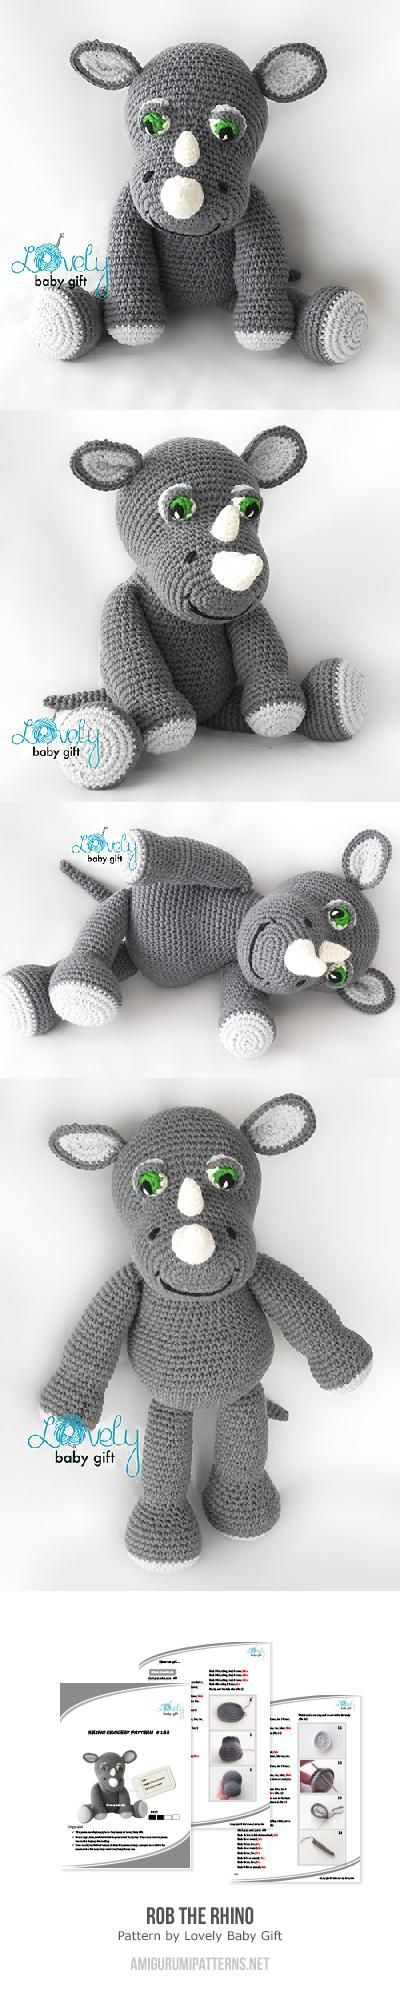 Same as a rhino - just add a horn - Found at Amigurumipatterns.net